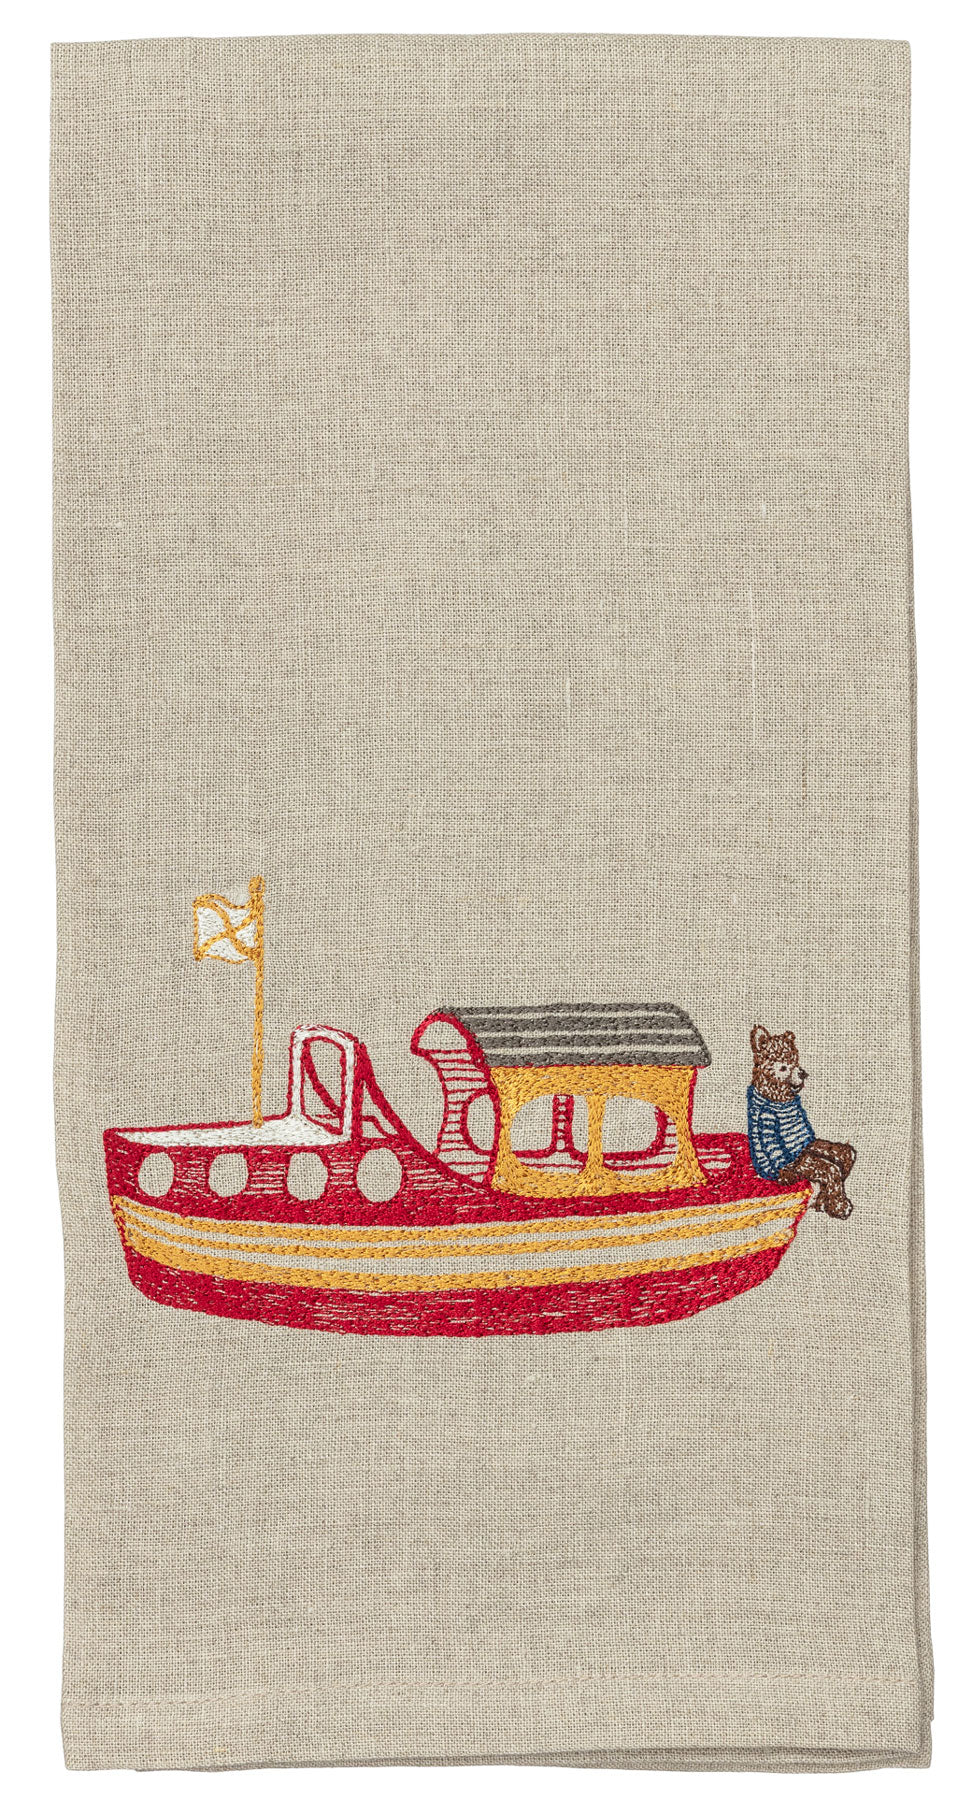 Boating Bear Tea Towel